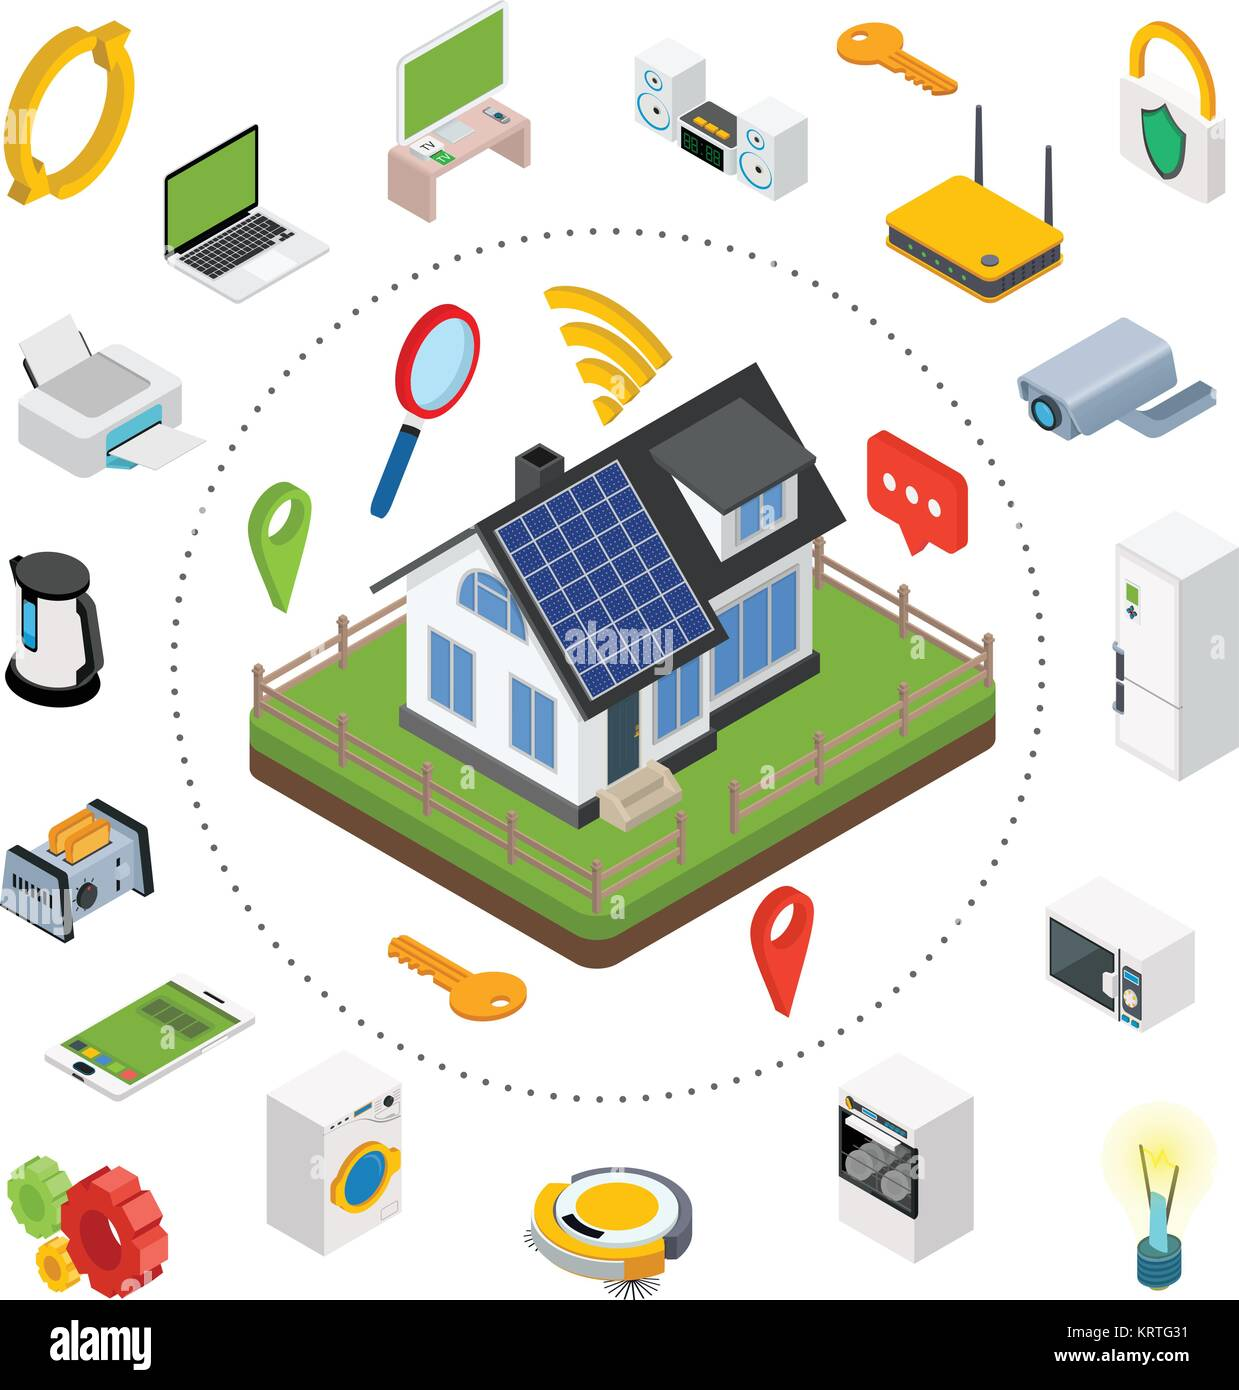 Smart home. Isometric design style vector illustration concept of ...